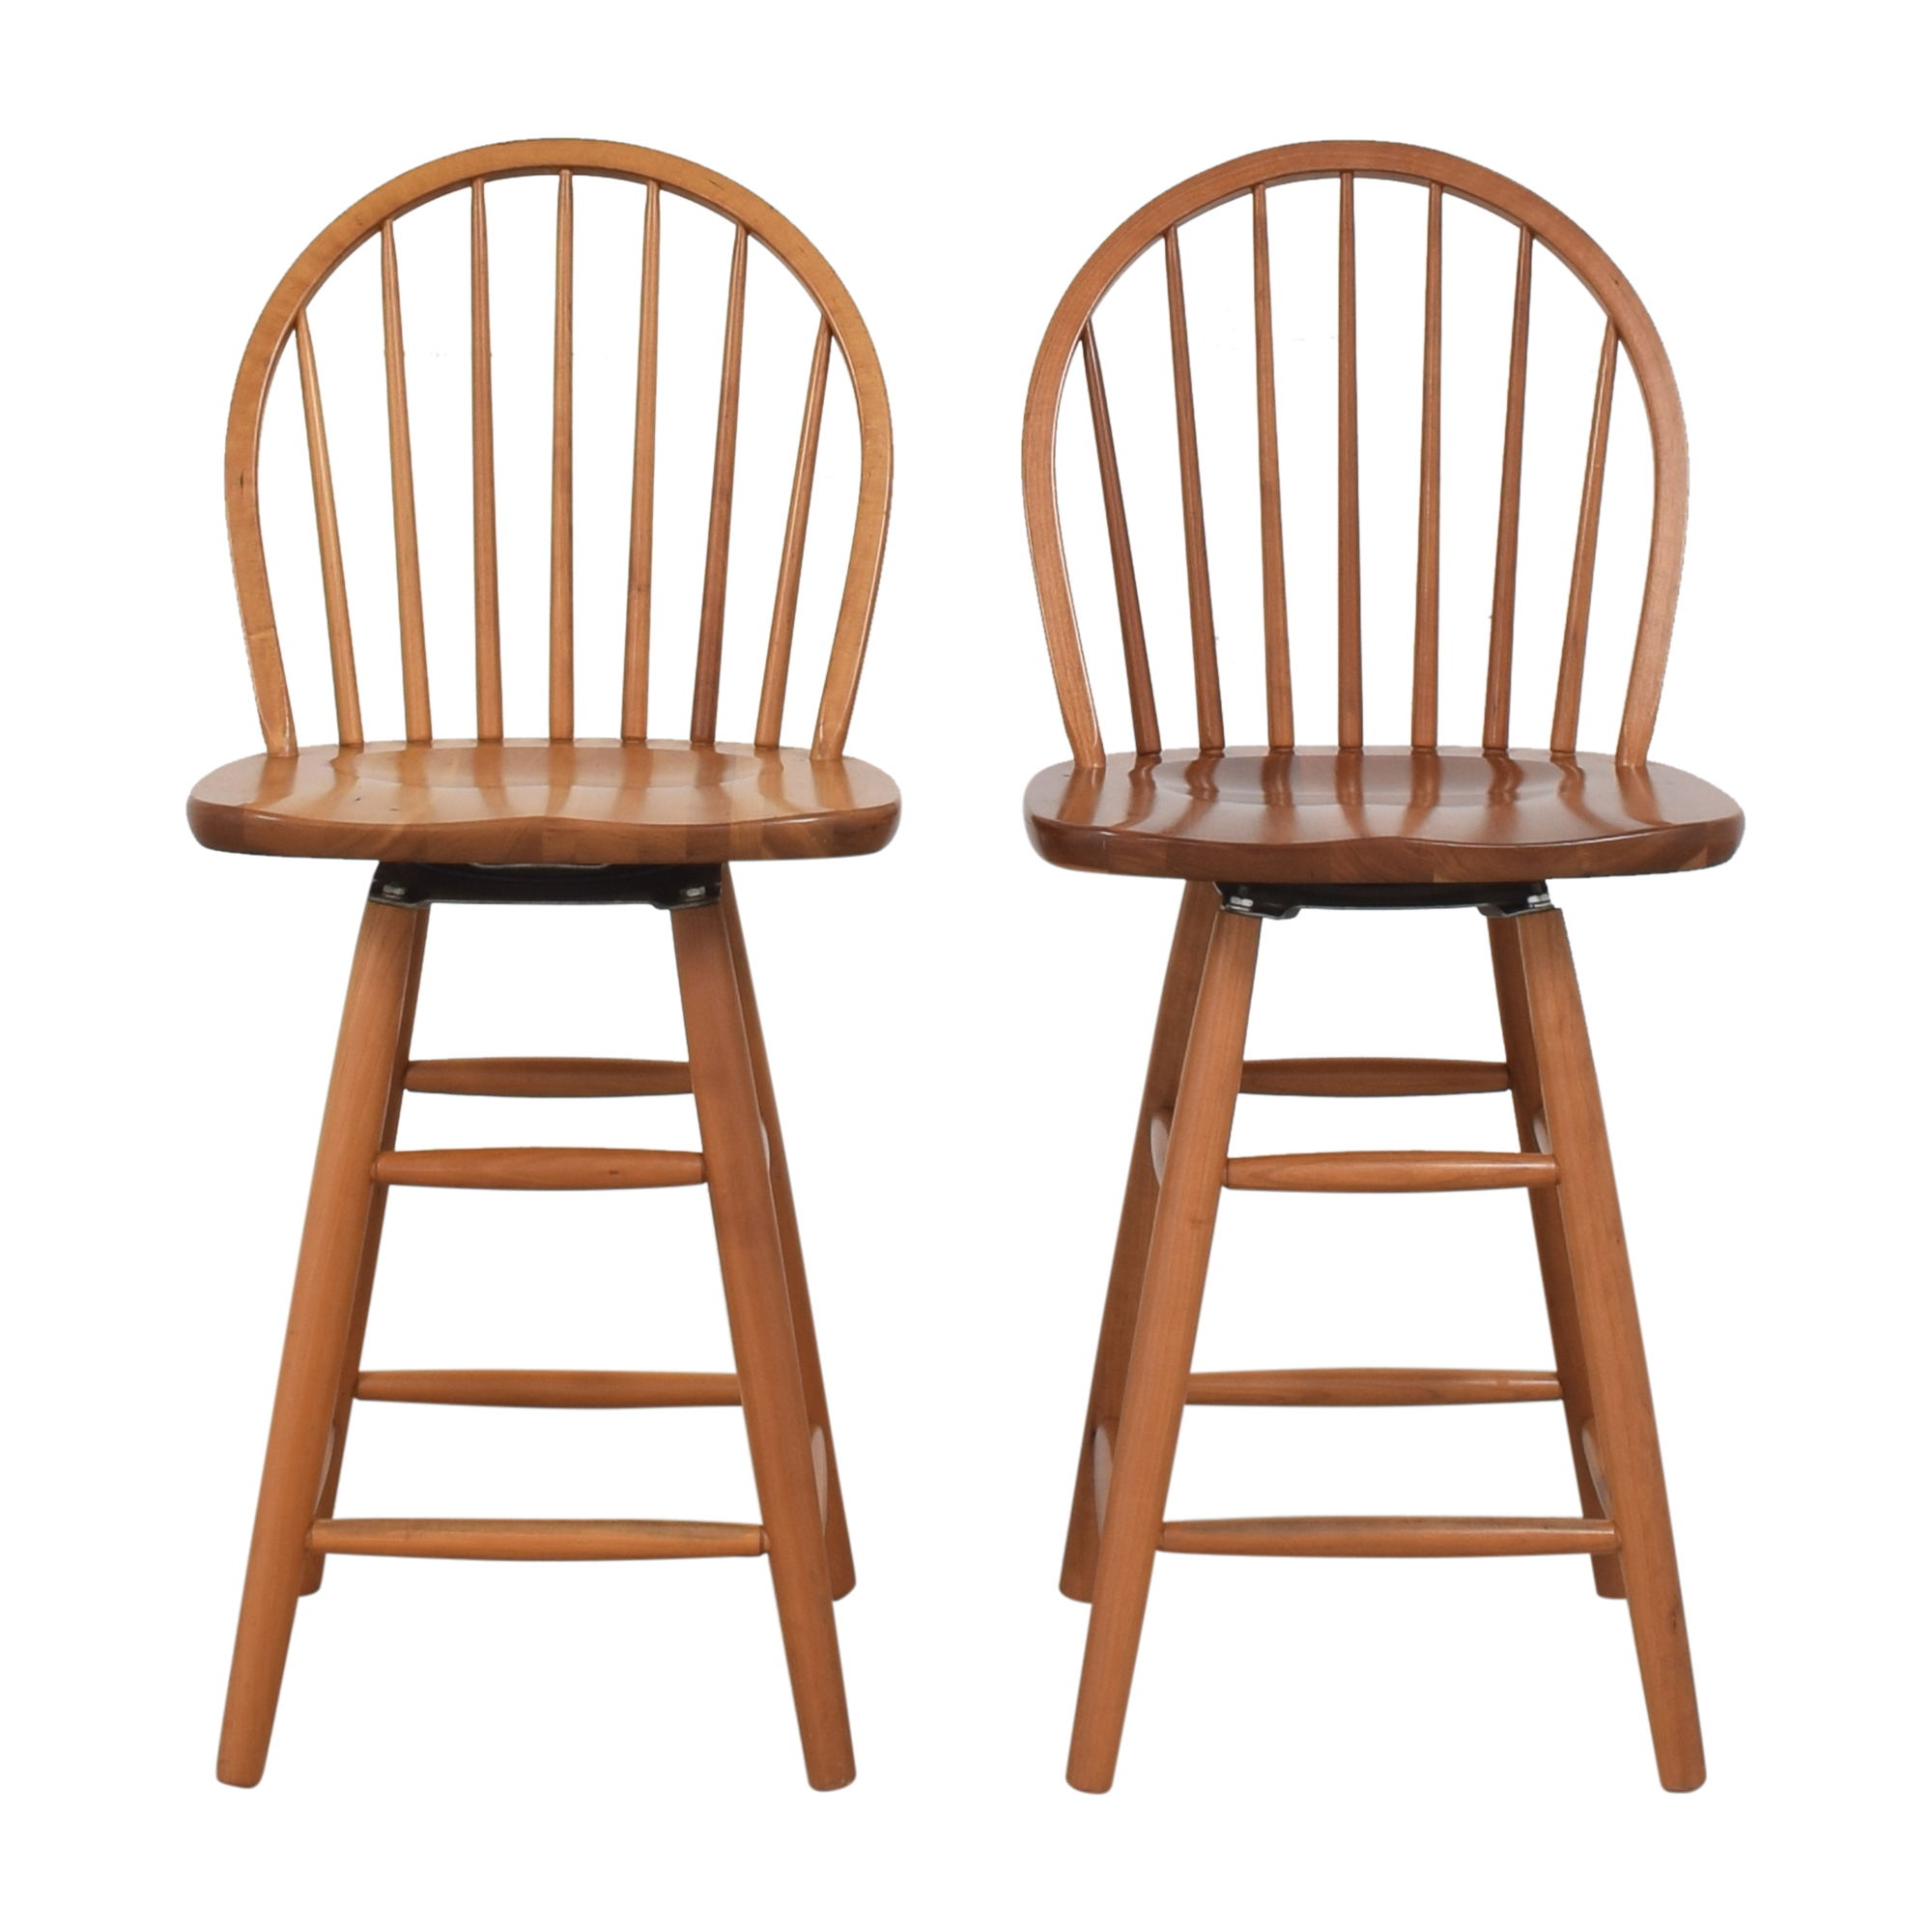 Clearlake  ClearLake Furniture Bow Back Swivel Counter Stools nyc